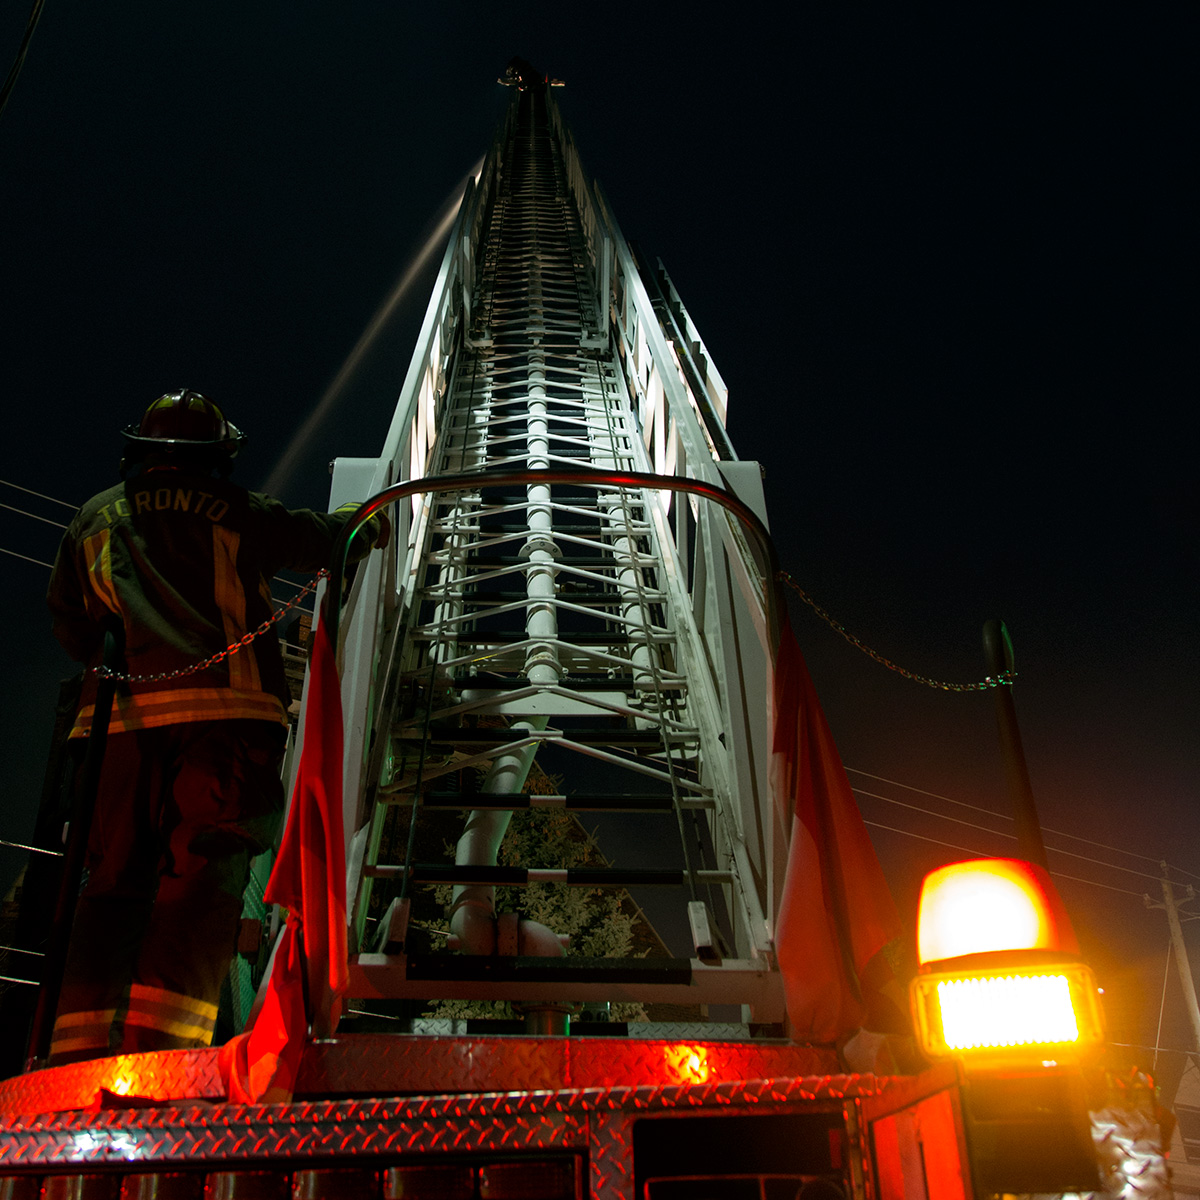 20140610. It is a long way to the top of a Toronto aerial fire truck .